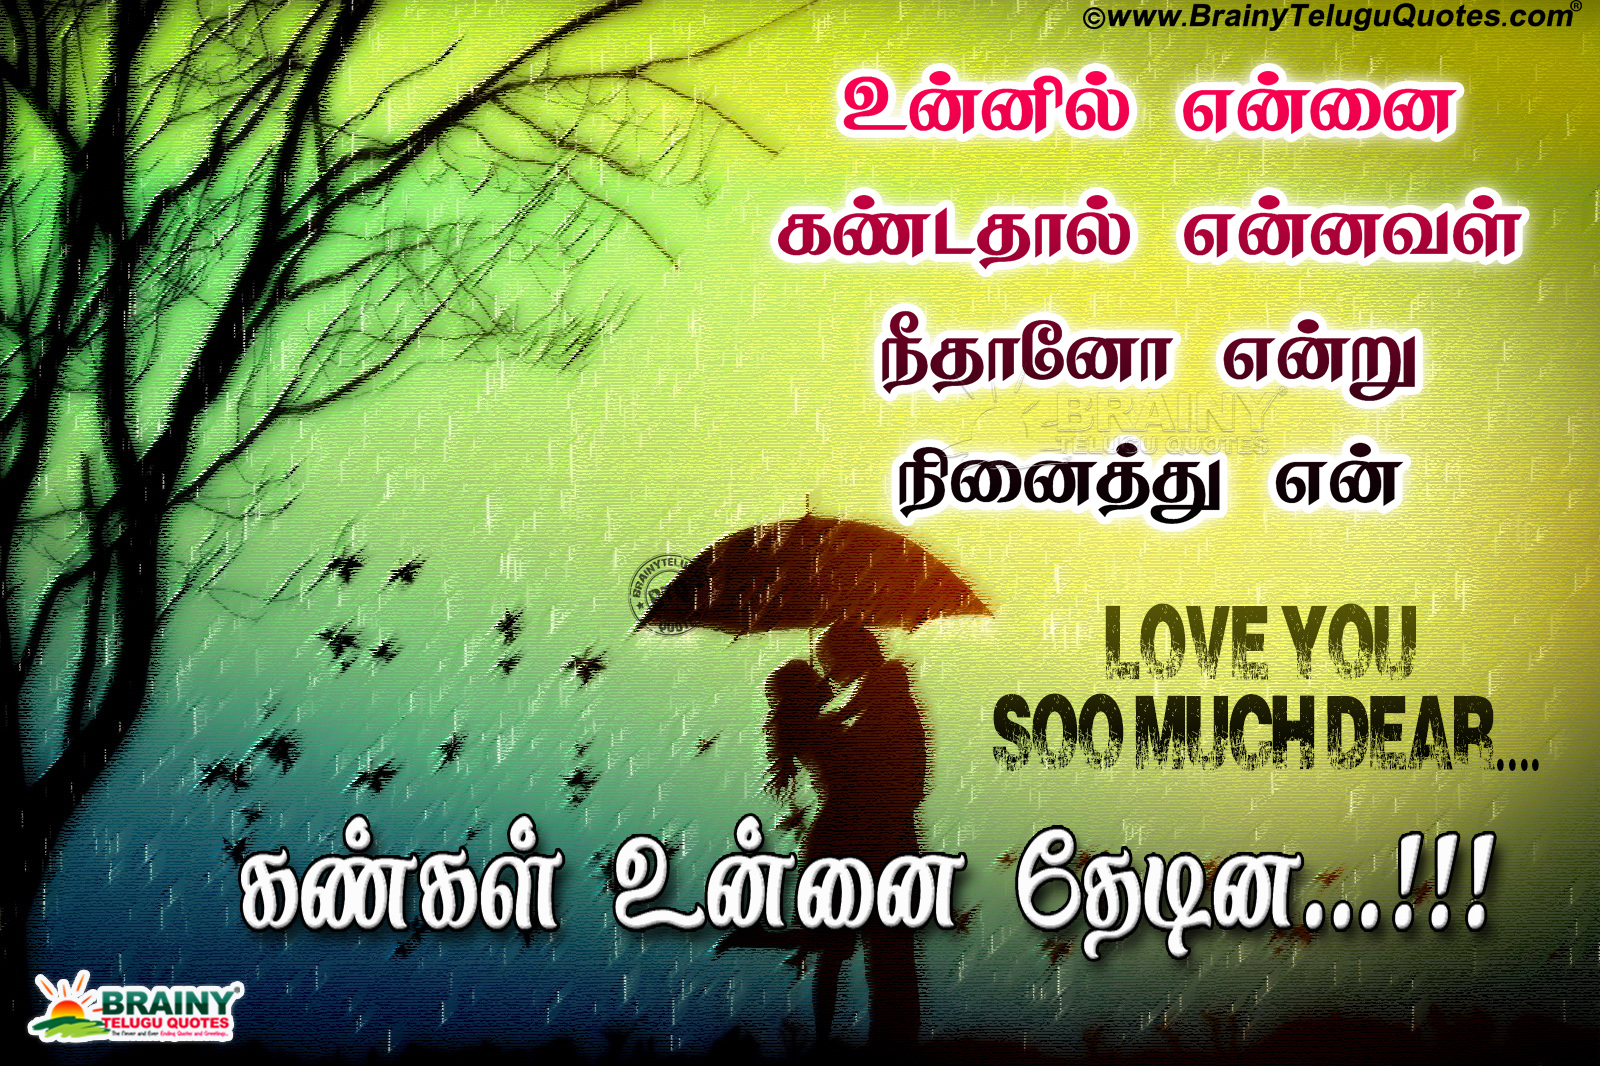 Romantic Love Quotes In Tamil Love Couple Hd Wallpapers With Love Quotes In Tamil Brainyteluguquotes Comtelugu Quotes English Quotes Hindi Quotes Tamil Quotes Greetings